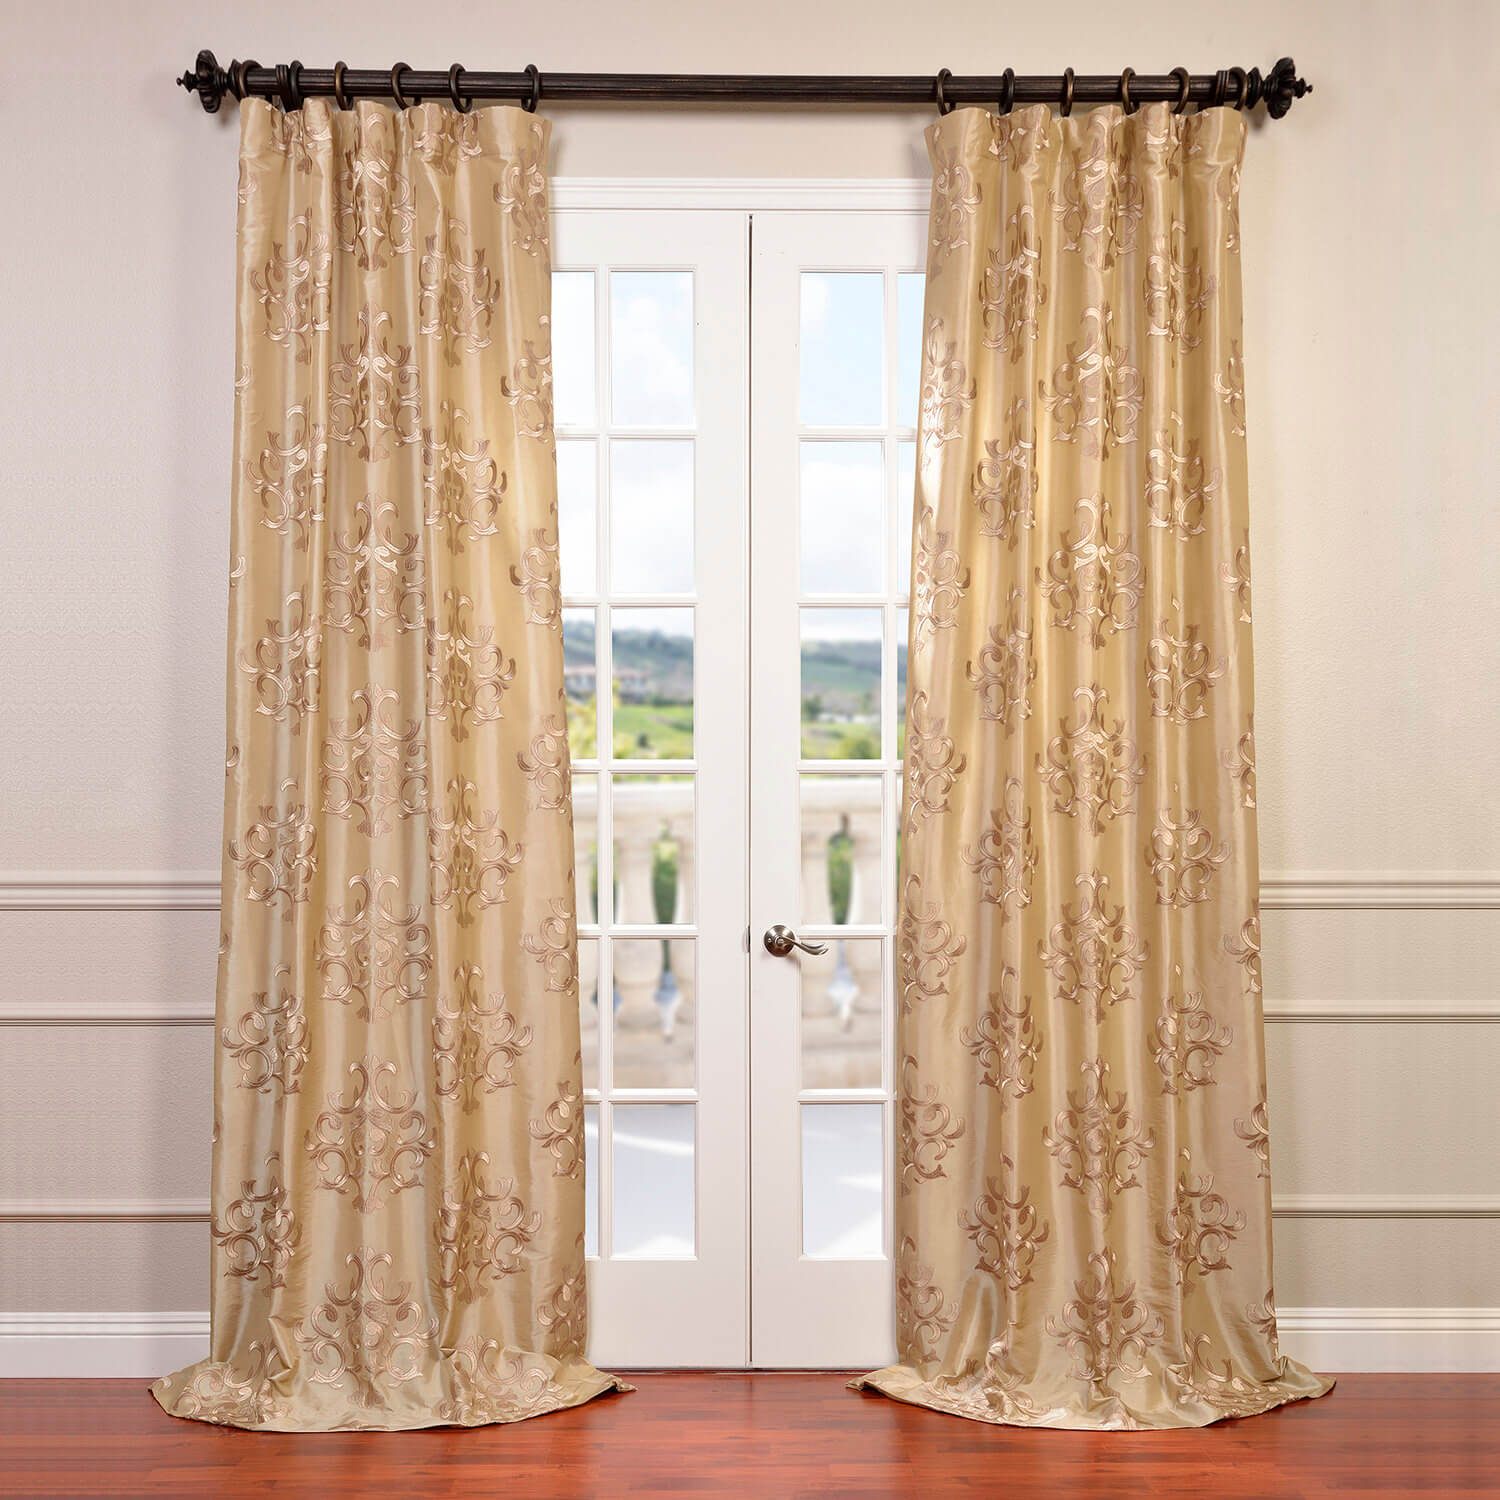 Embroidered Curtains | Macrame Drapes | Embroidered Shower Curtains